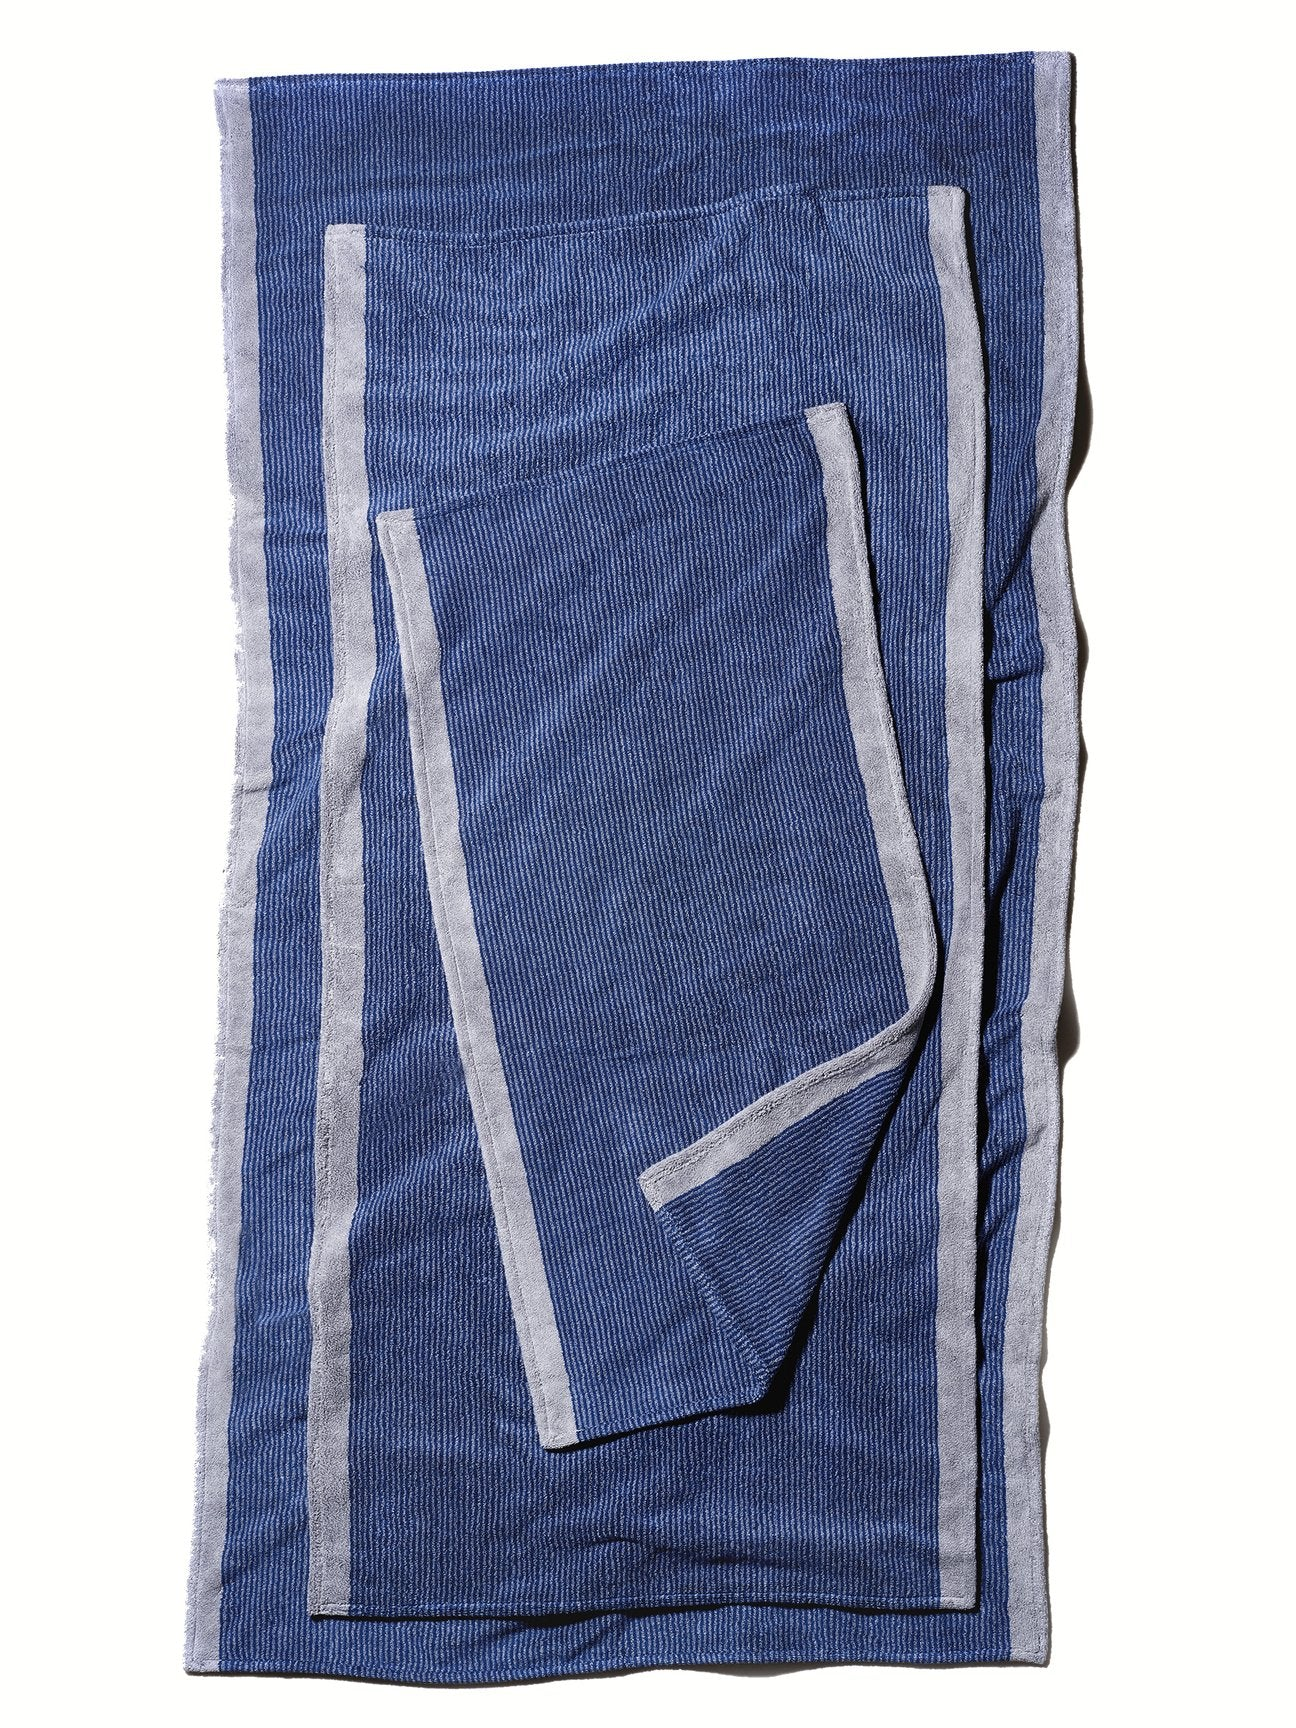 Cleverly-Bath-Towel-Set-Navy